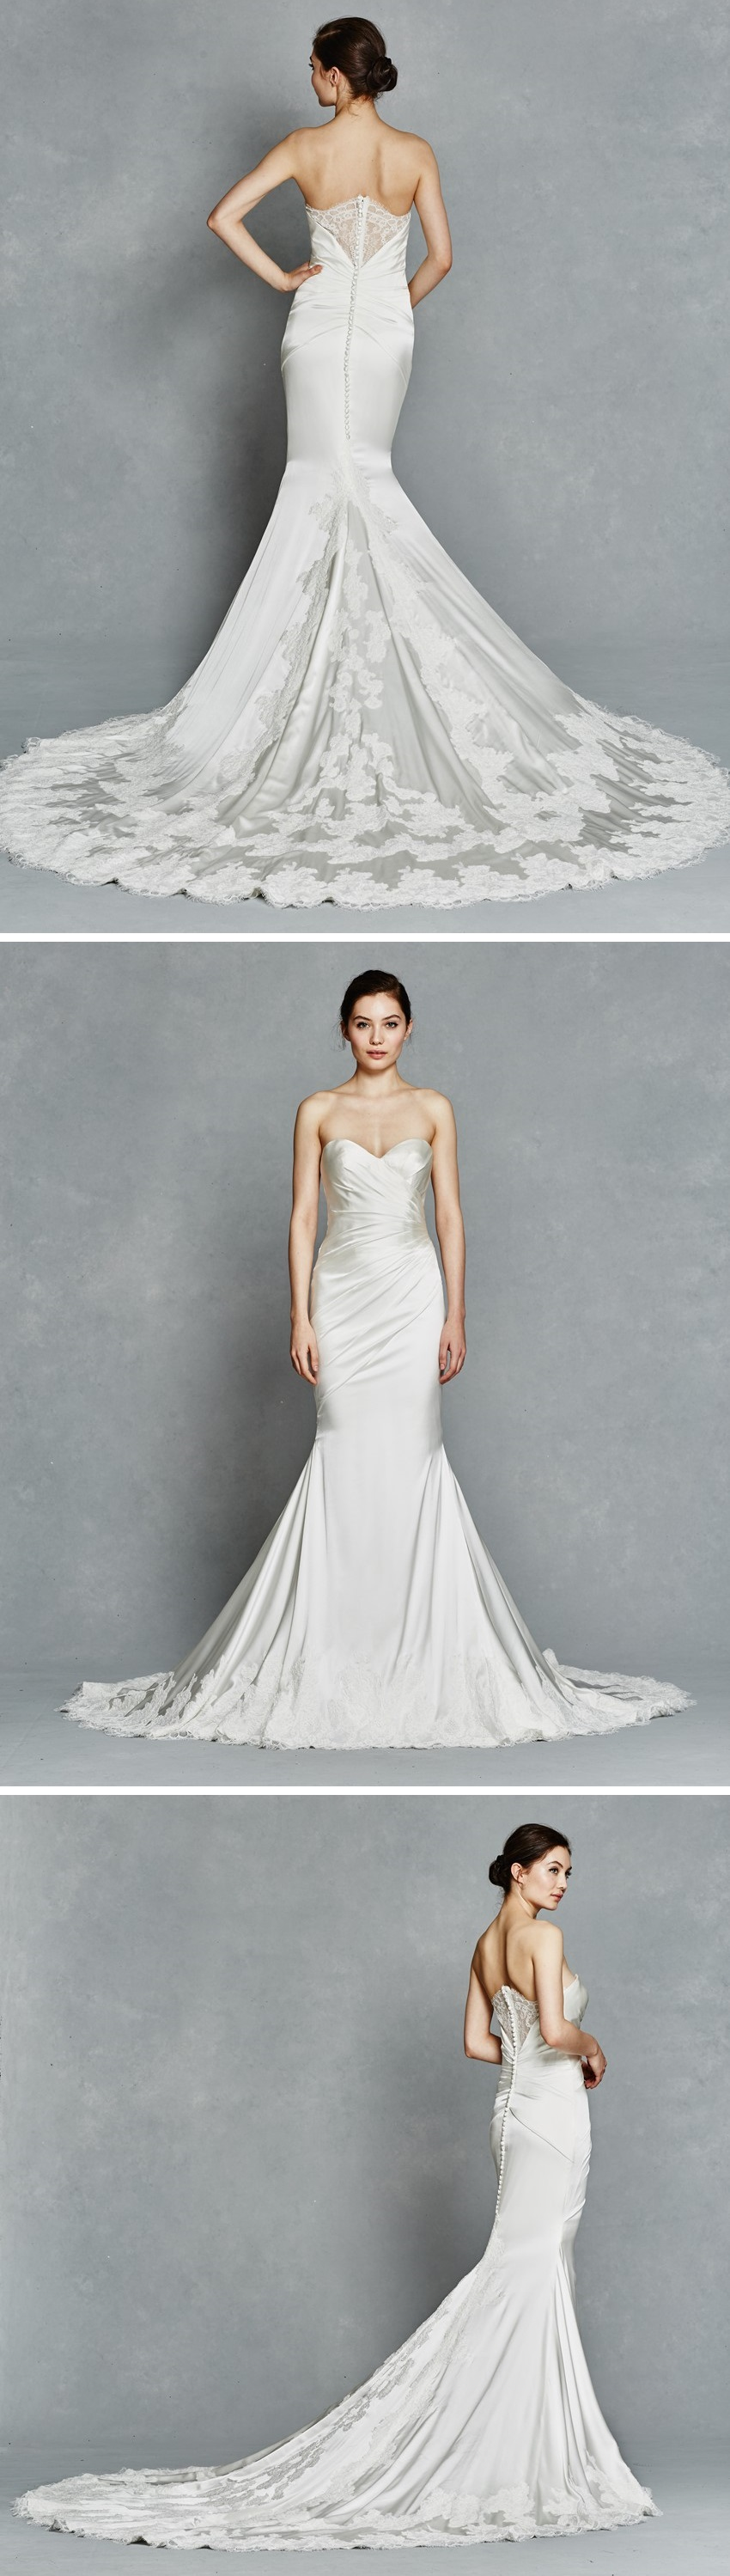 love the train and the back detail of this beautiful wedding dress